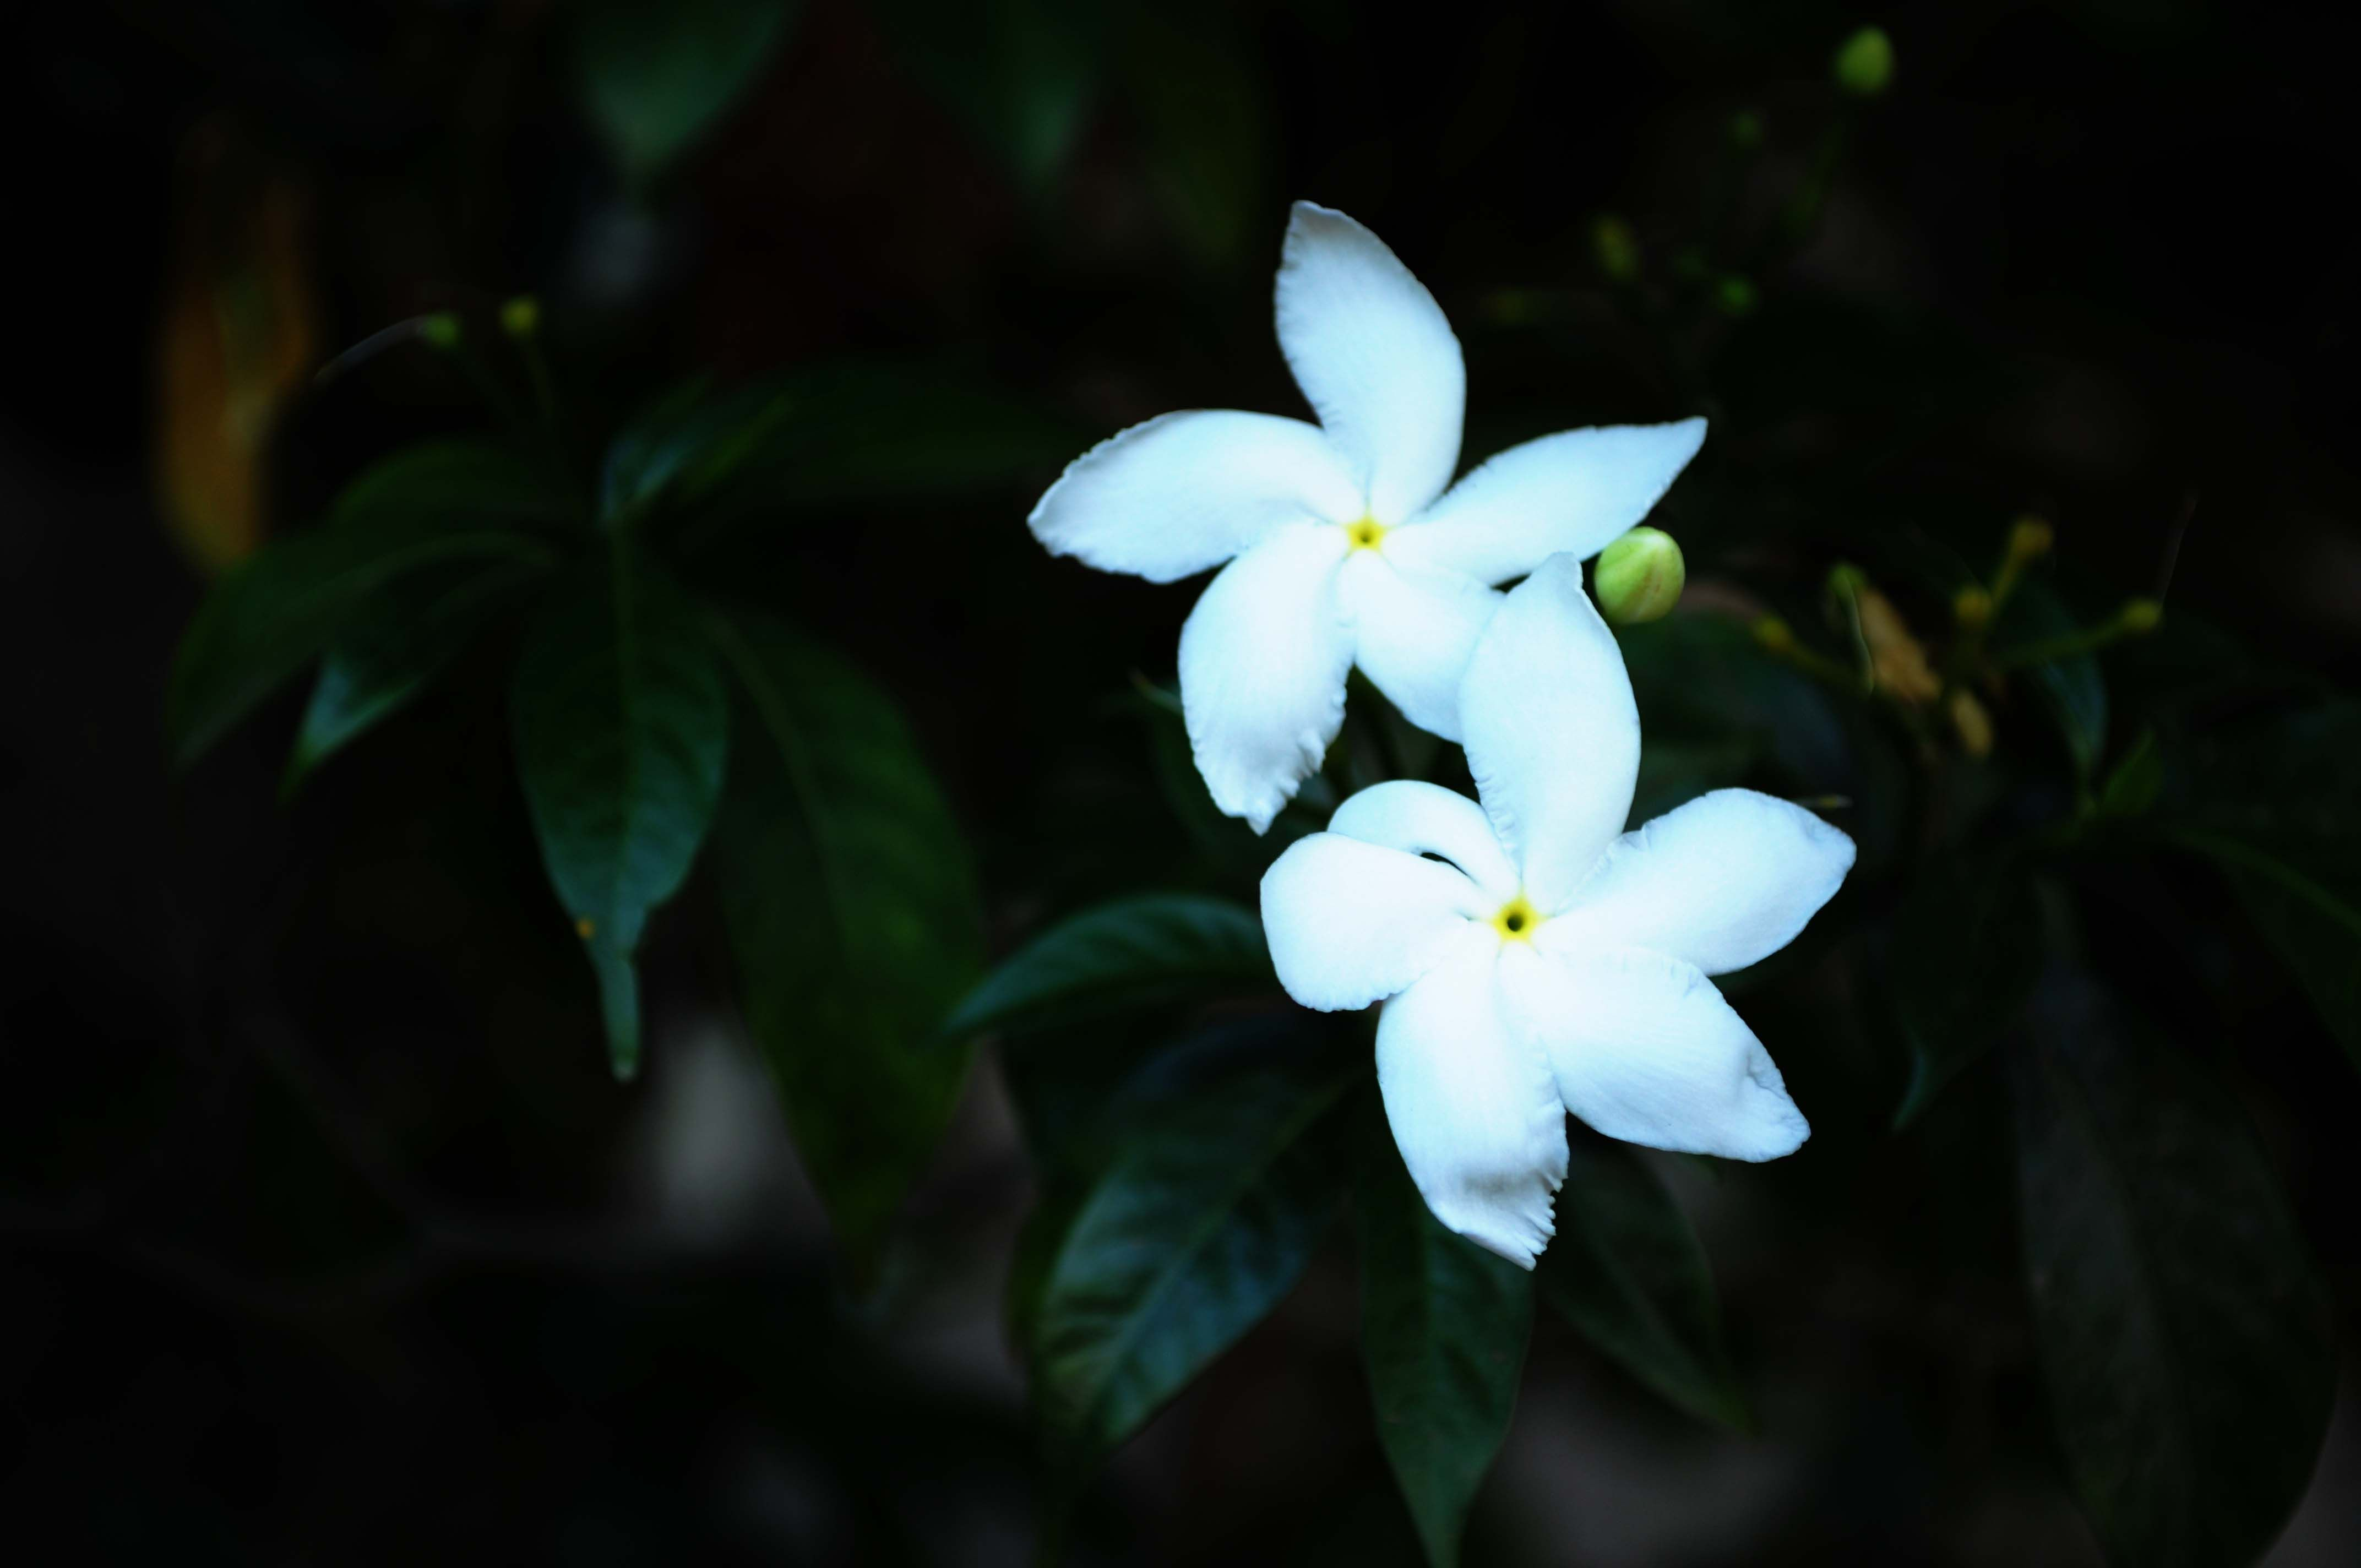 Nandiarvattom Or Crepe Jasmine Or Carnation Of India